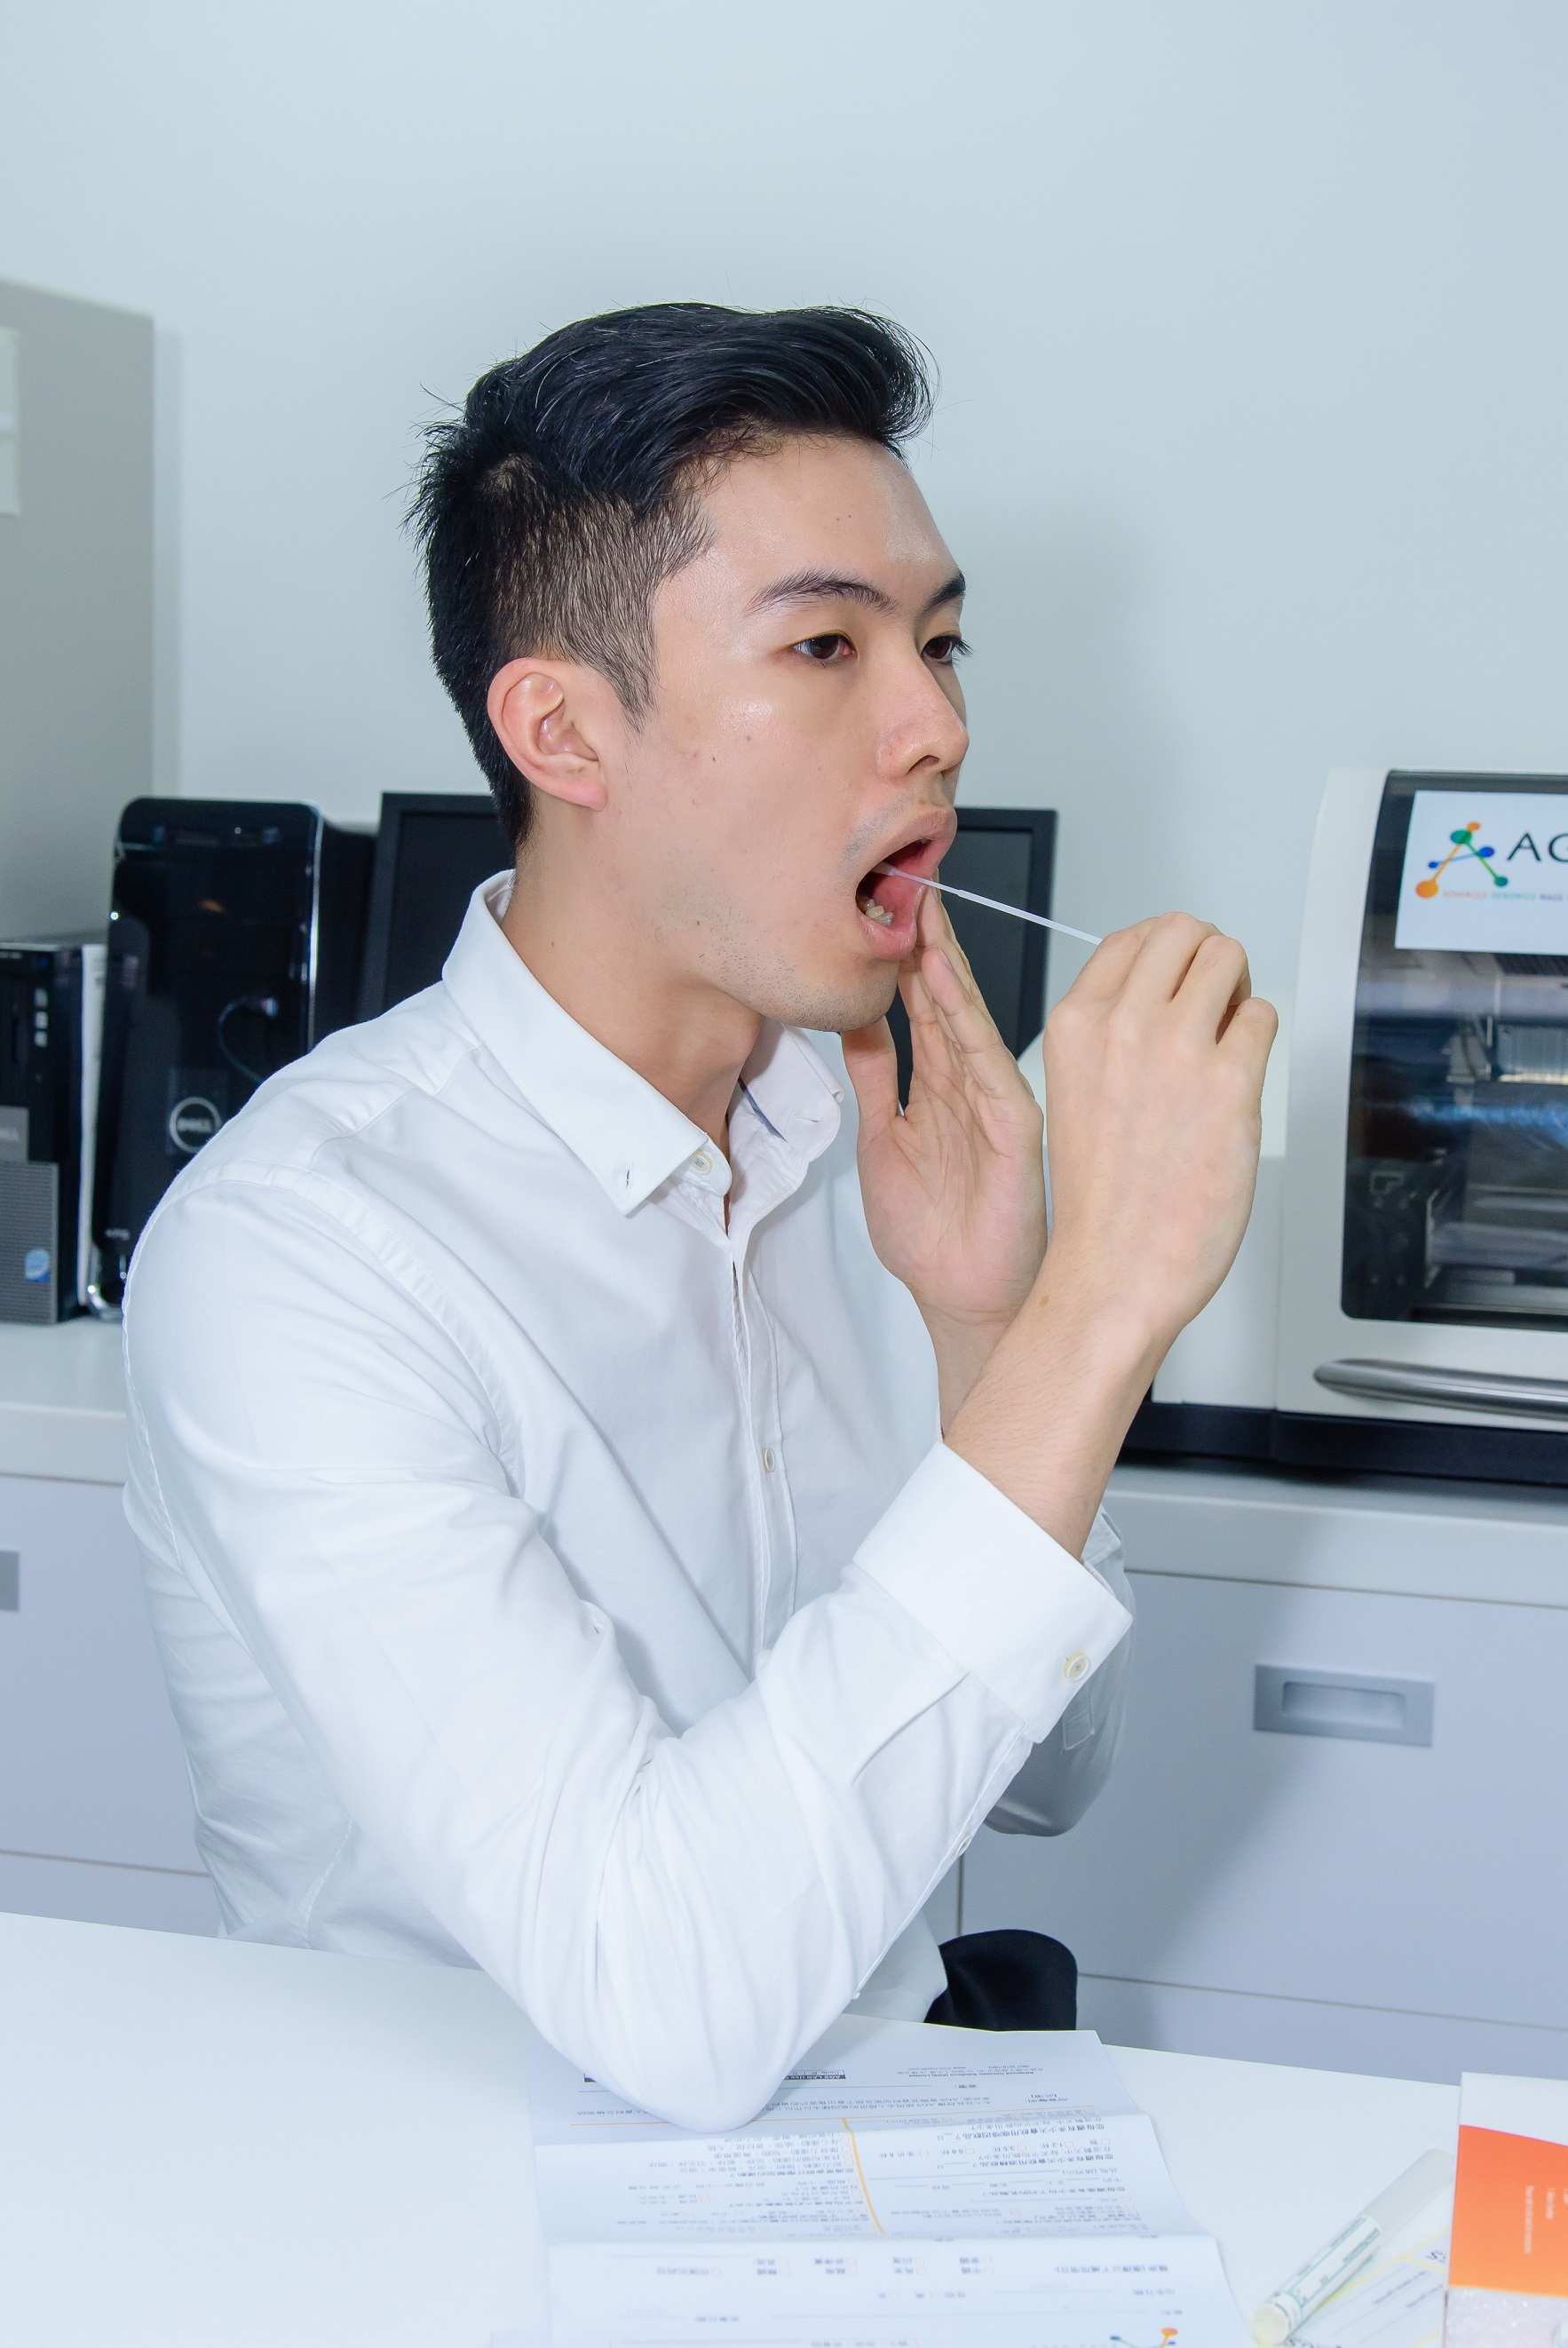 DNA Sample Extraction 採集口腔試沫樣本